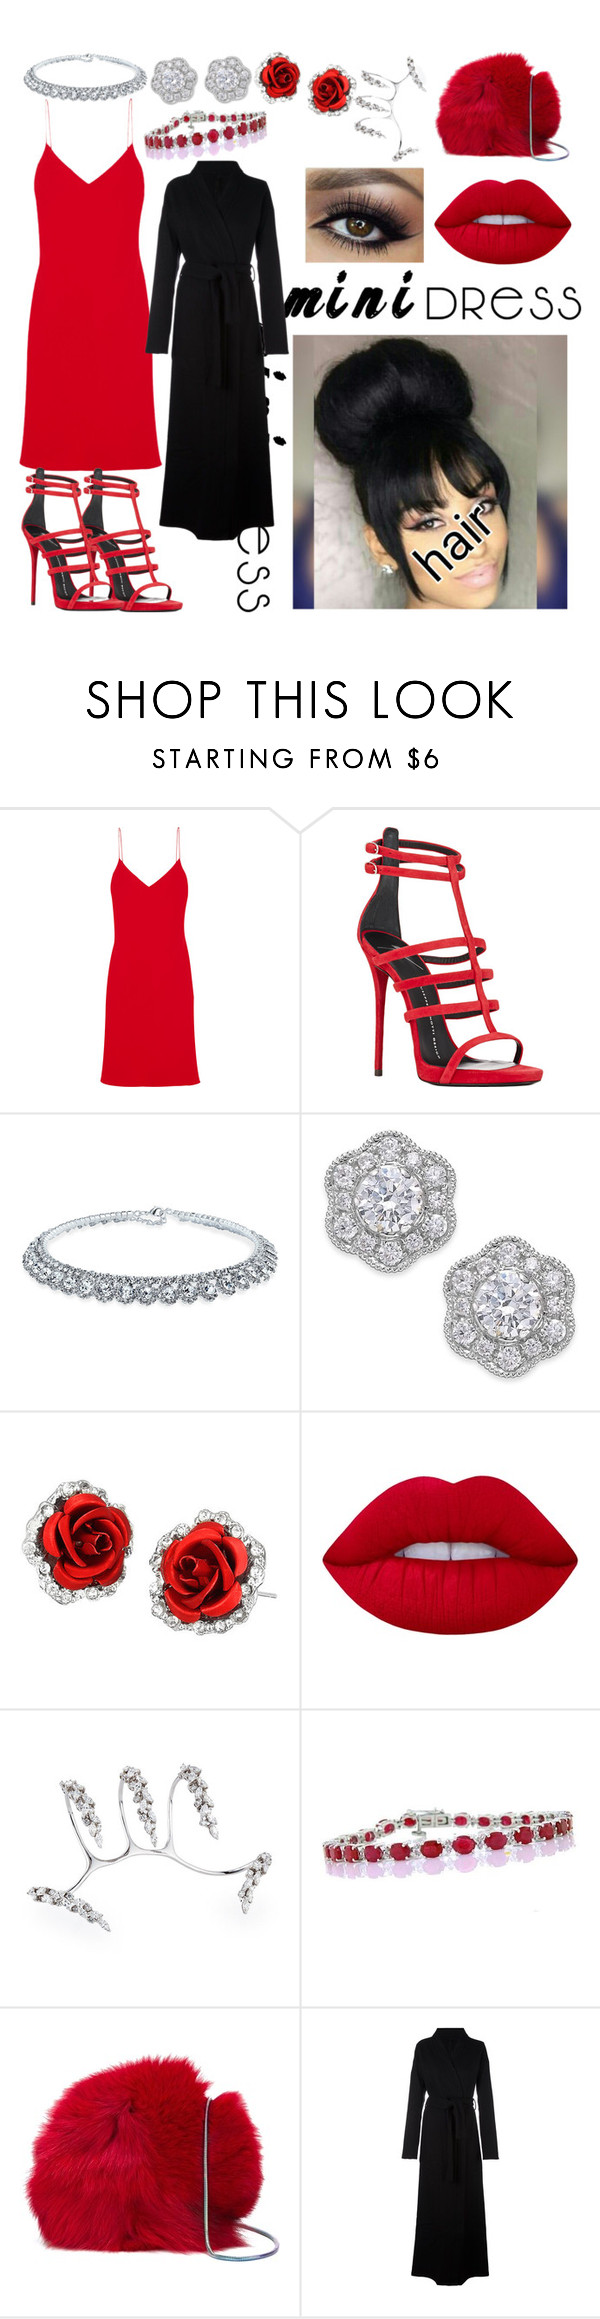 """""""Aries always Dress to Kill"""" by sheismisslewis ❤ liked on Polyvore featuring Calvin Klein Collection, Giuseppe Zanotti, Bling Jewelry, Marchesa, Lime Crime, Yeprem, Diane Von Furstenberg and Unravel"""